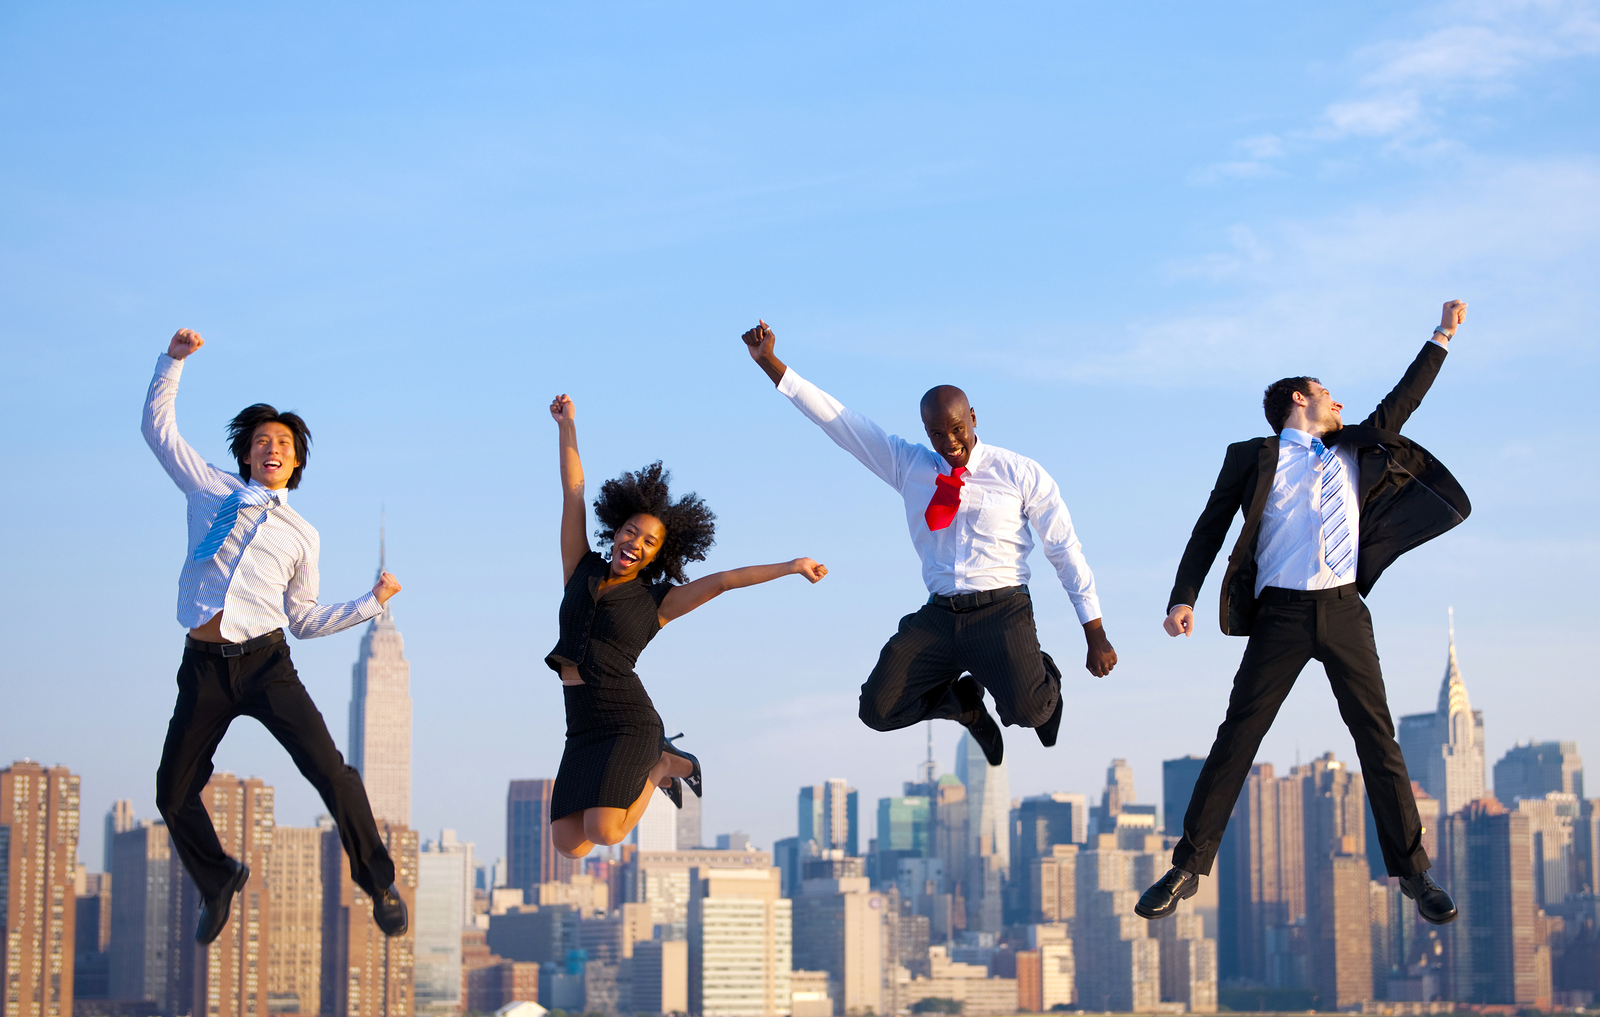 Happy Successful Business People Celebrating and Jumping in New